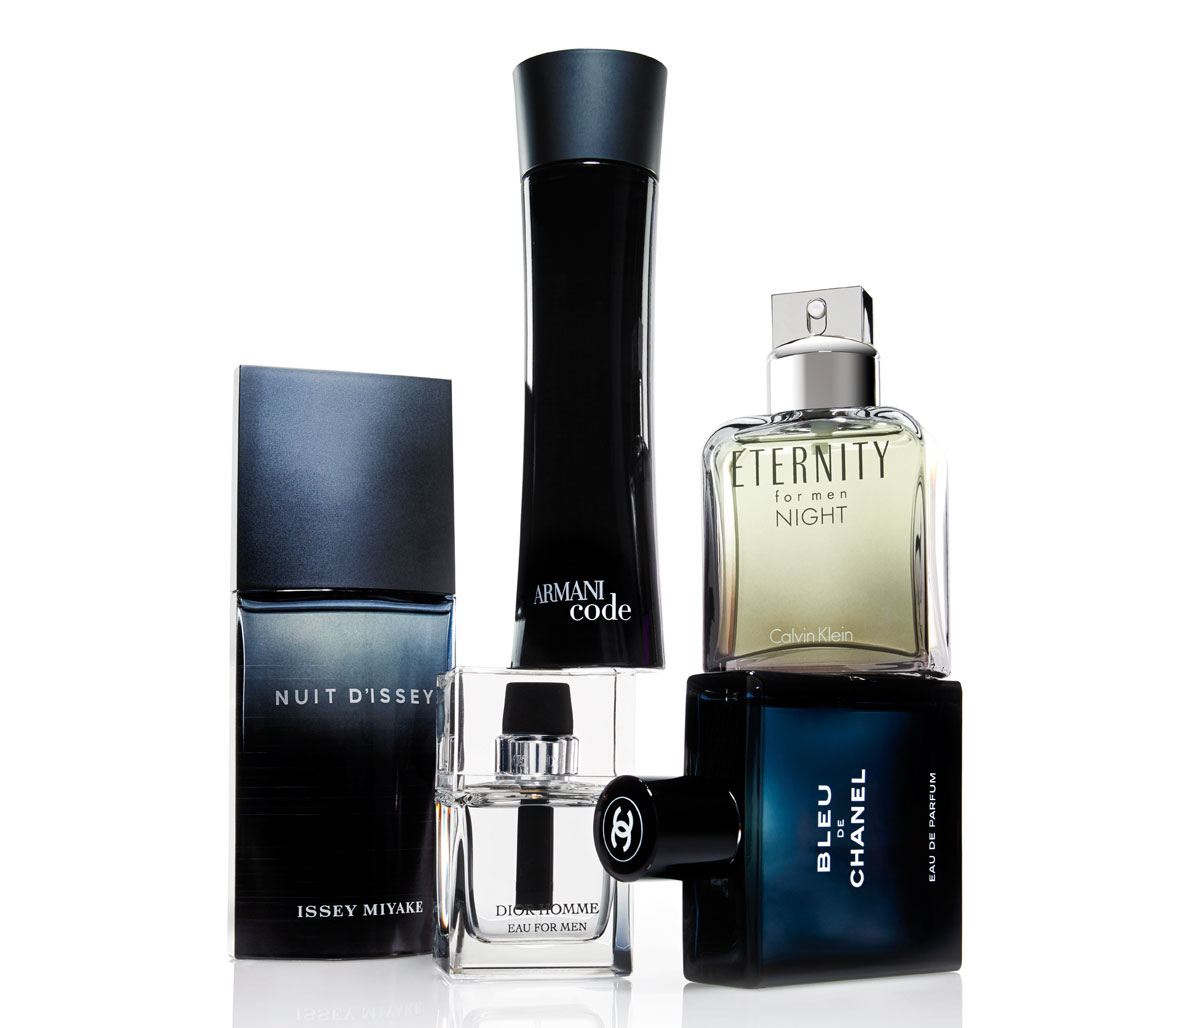 Cold & Bold: The 10 Best Winter Scents for Men